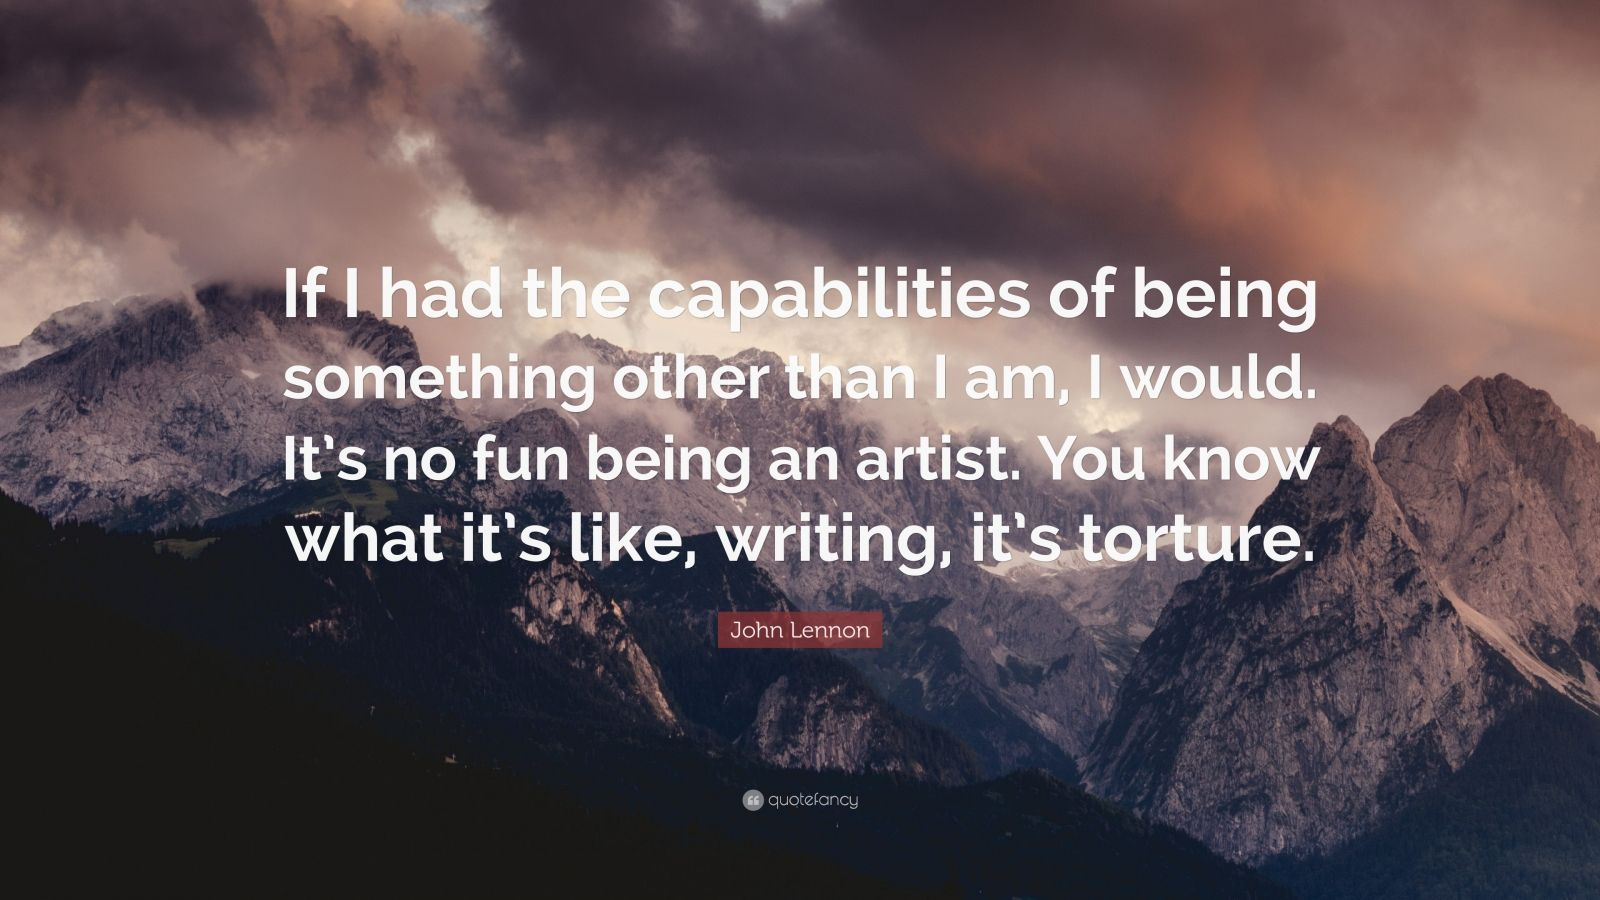 """John Lennon Quote: """"If I had the capabilities of being something other than I am, I would. It's no fun being an artist. You know what it's like, writing, it's torture."""""""